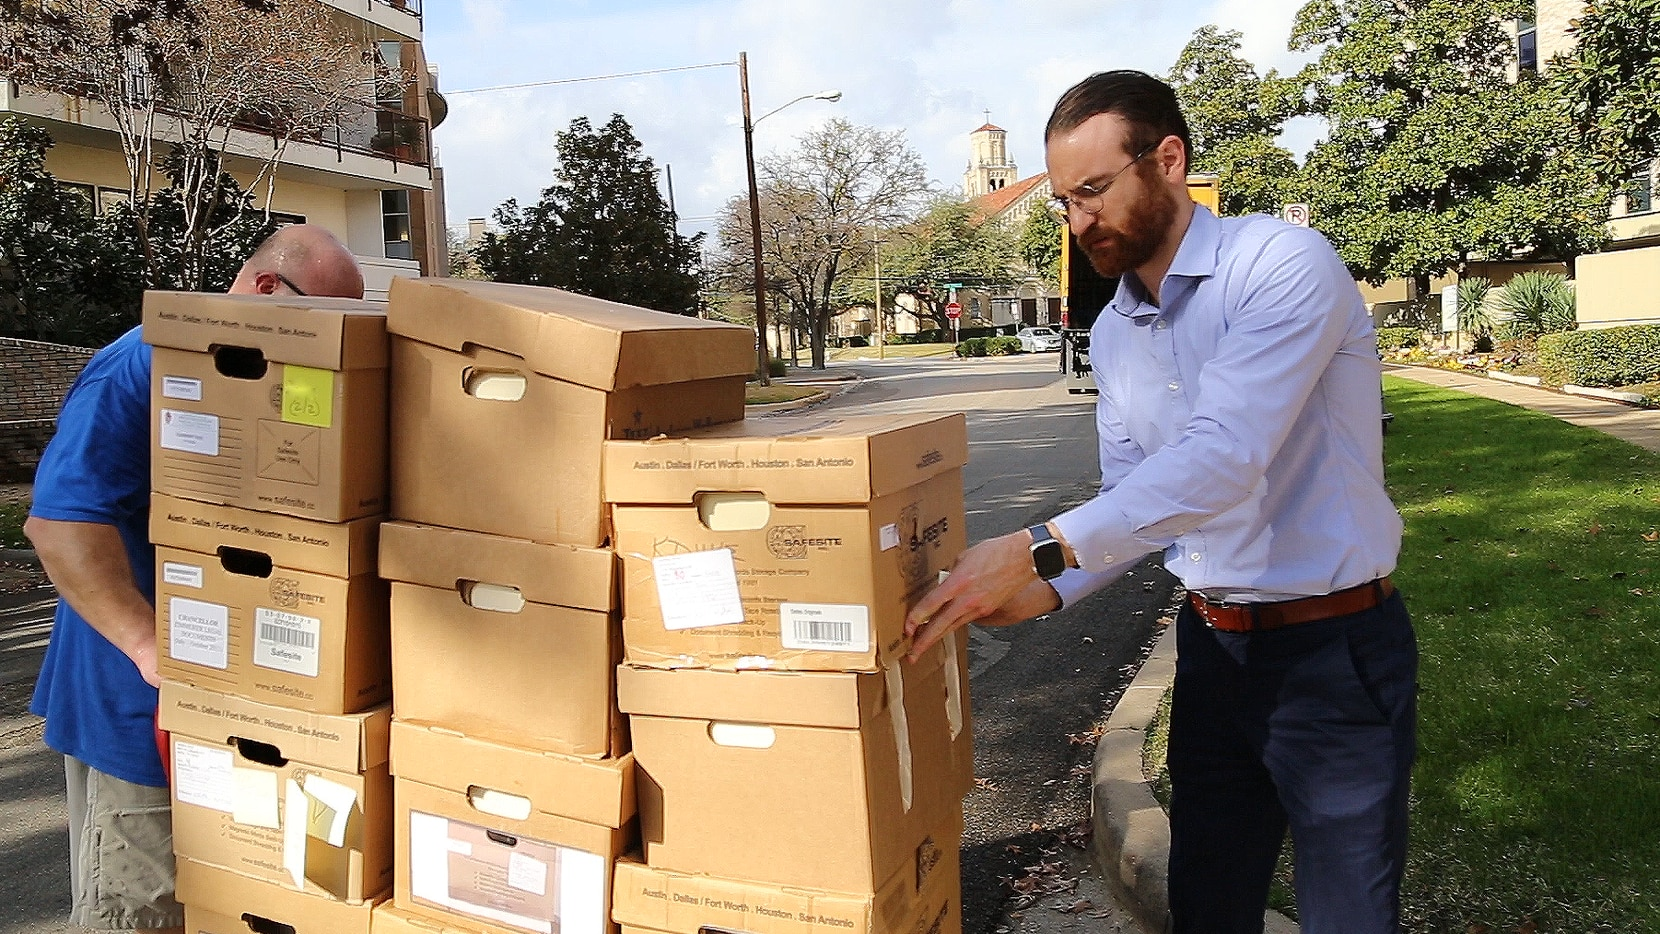 "Dallas Catholic Diocese Chancellor Greg Caridi accepts boxes of documents that police had seized on May 15, 2019. State District Judge Brandon Birmingham ordered that any record that ""exceeds the scope of the search warrant as written,"" to be returned by police to the diocese. Some records were also exempt from disclosure because they were protected by attorney-client privilege. This shipment of boxes was returned to the diocese's pastoral center on Nov. 7, 2019. Another shipment was returned Jan. 21, 2020."